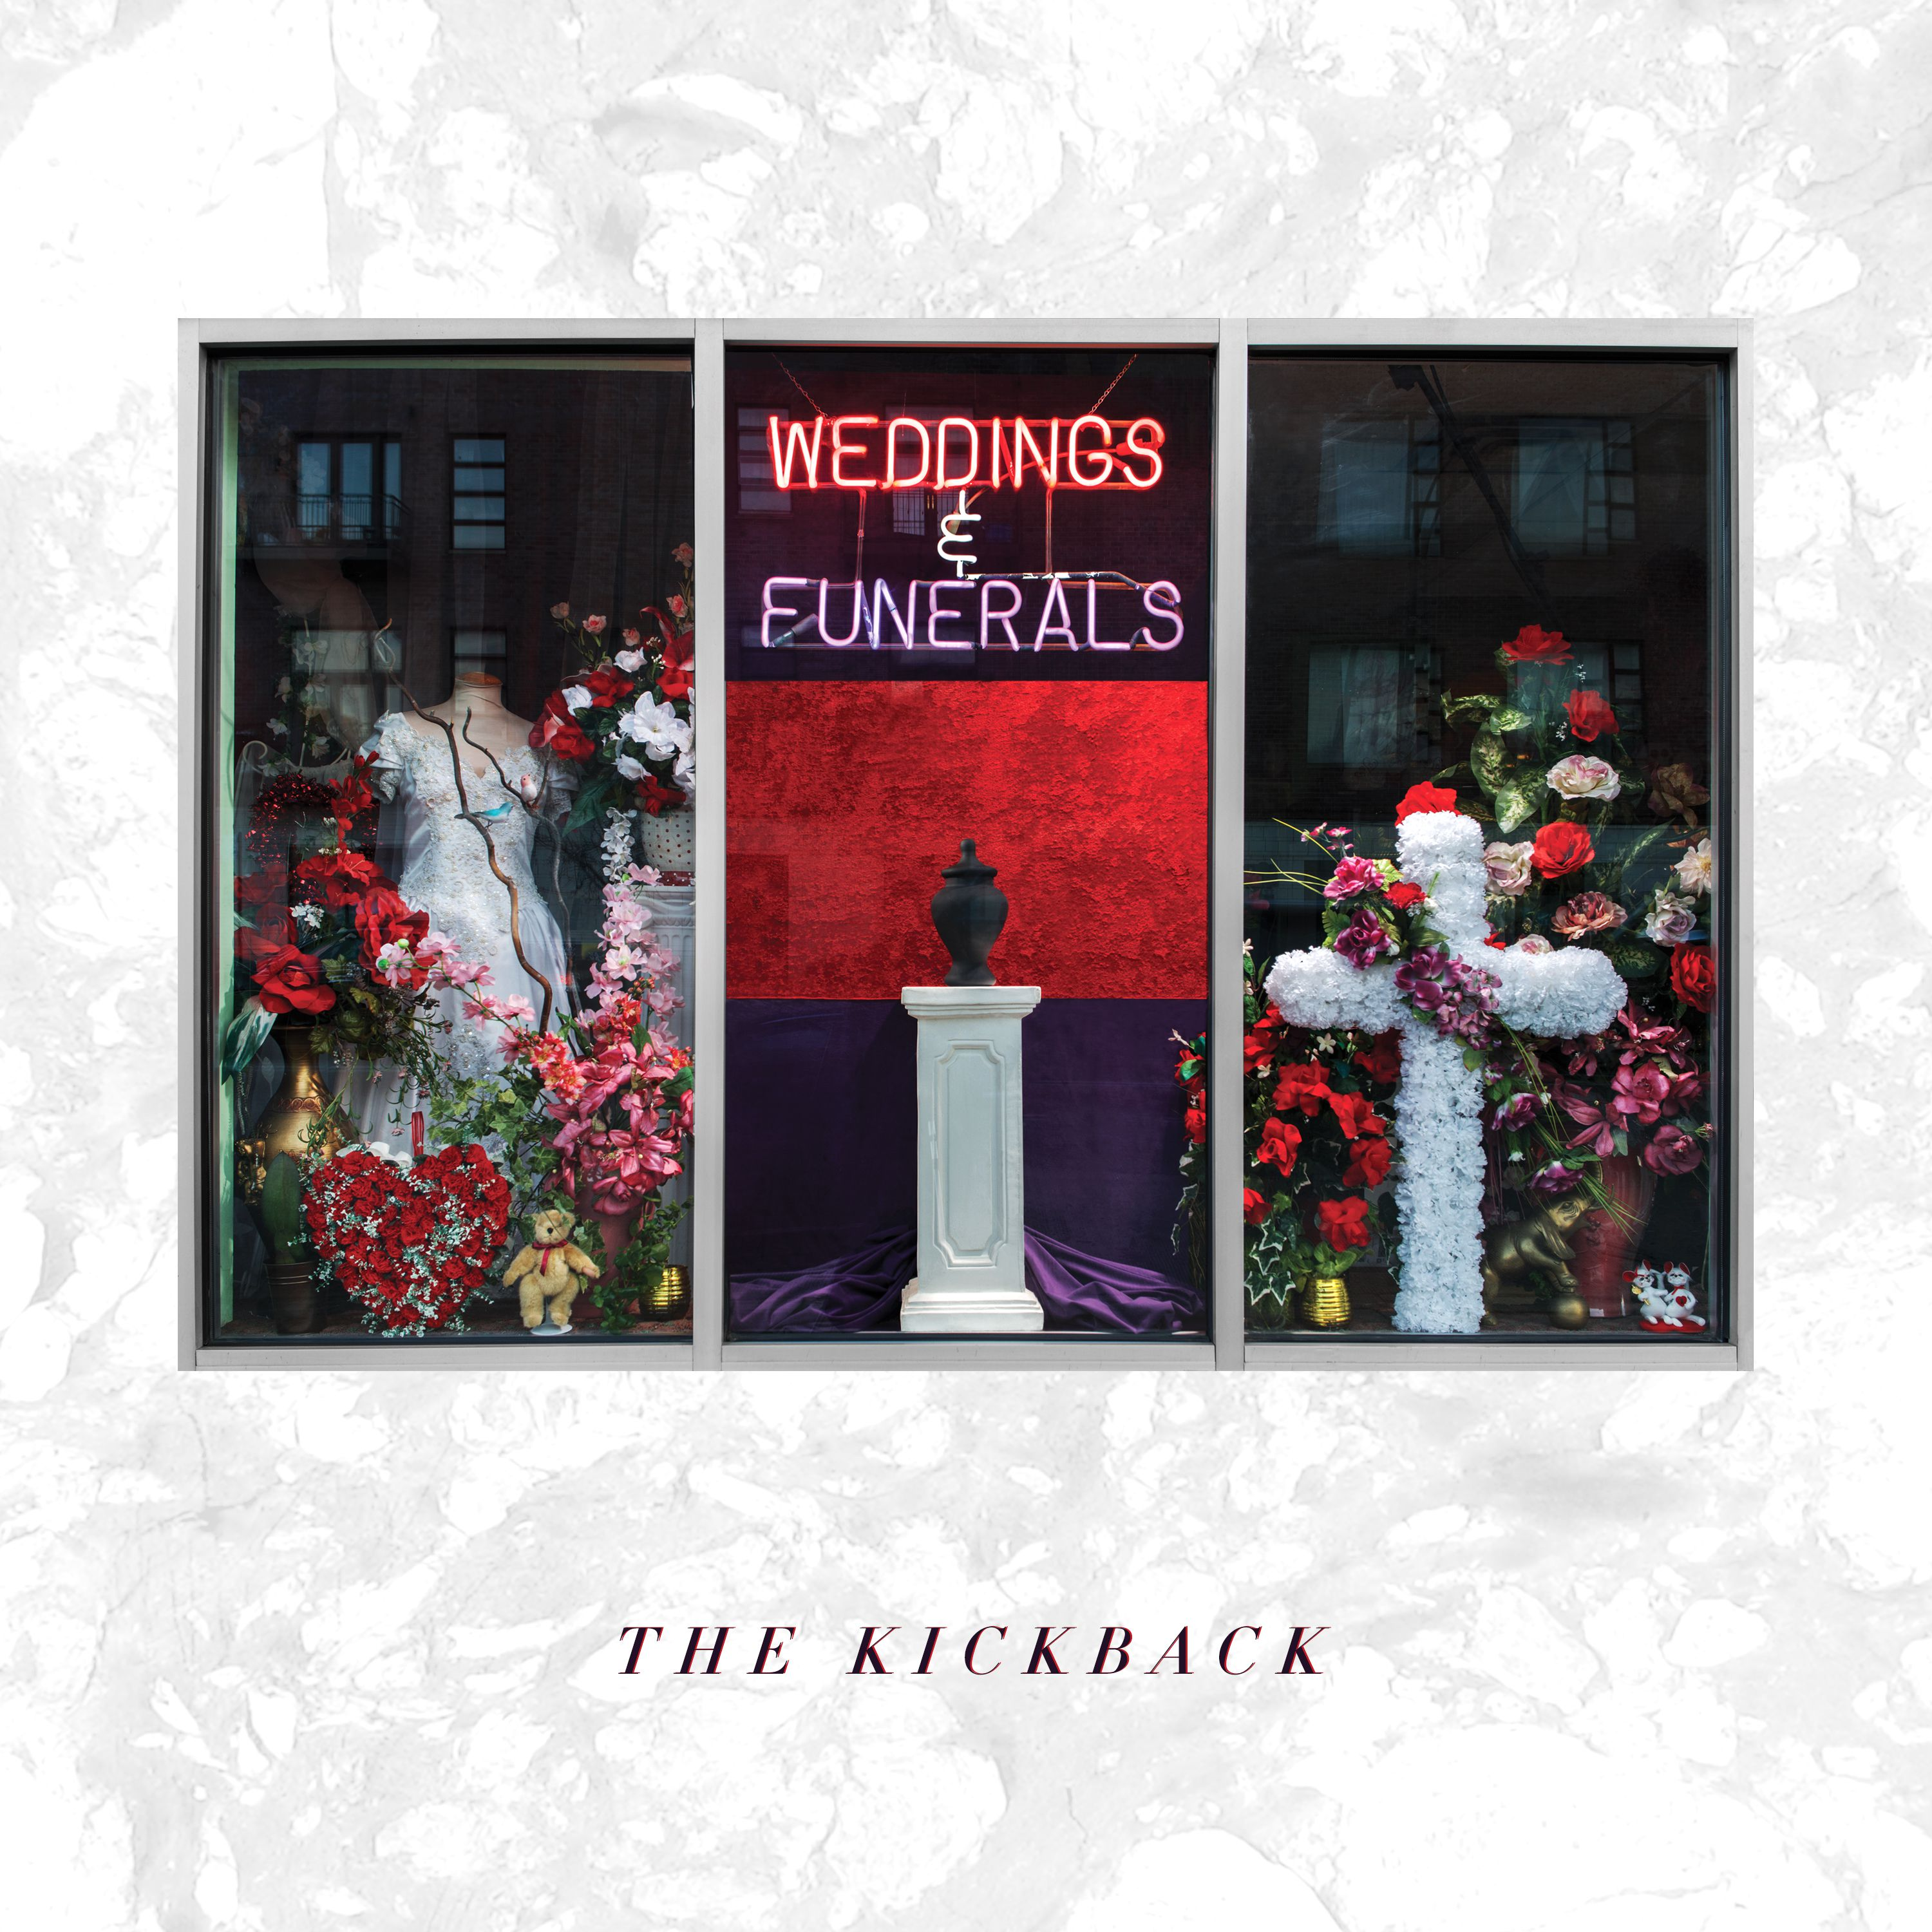 the kickback weddings and funerals Top 50 Albums of 2017